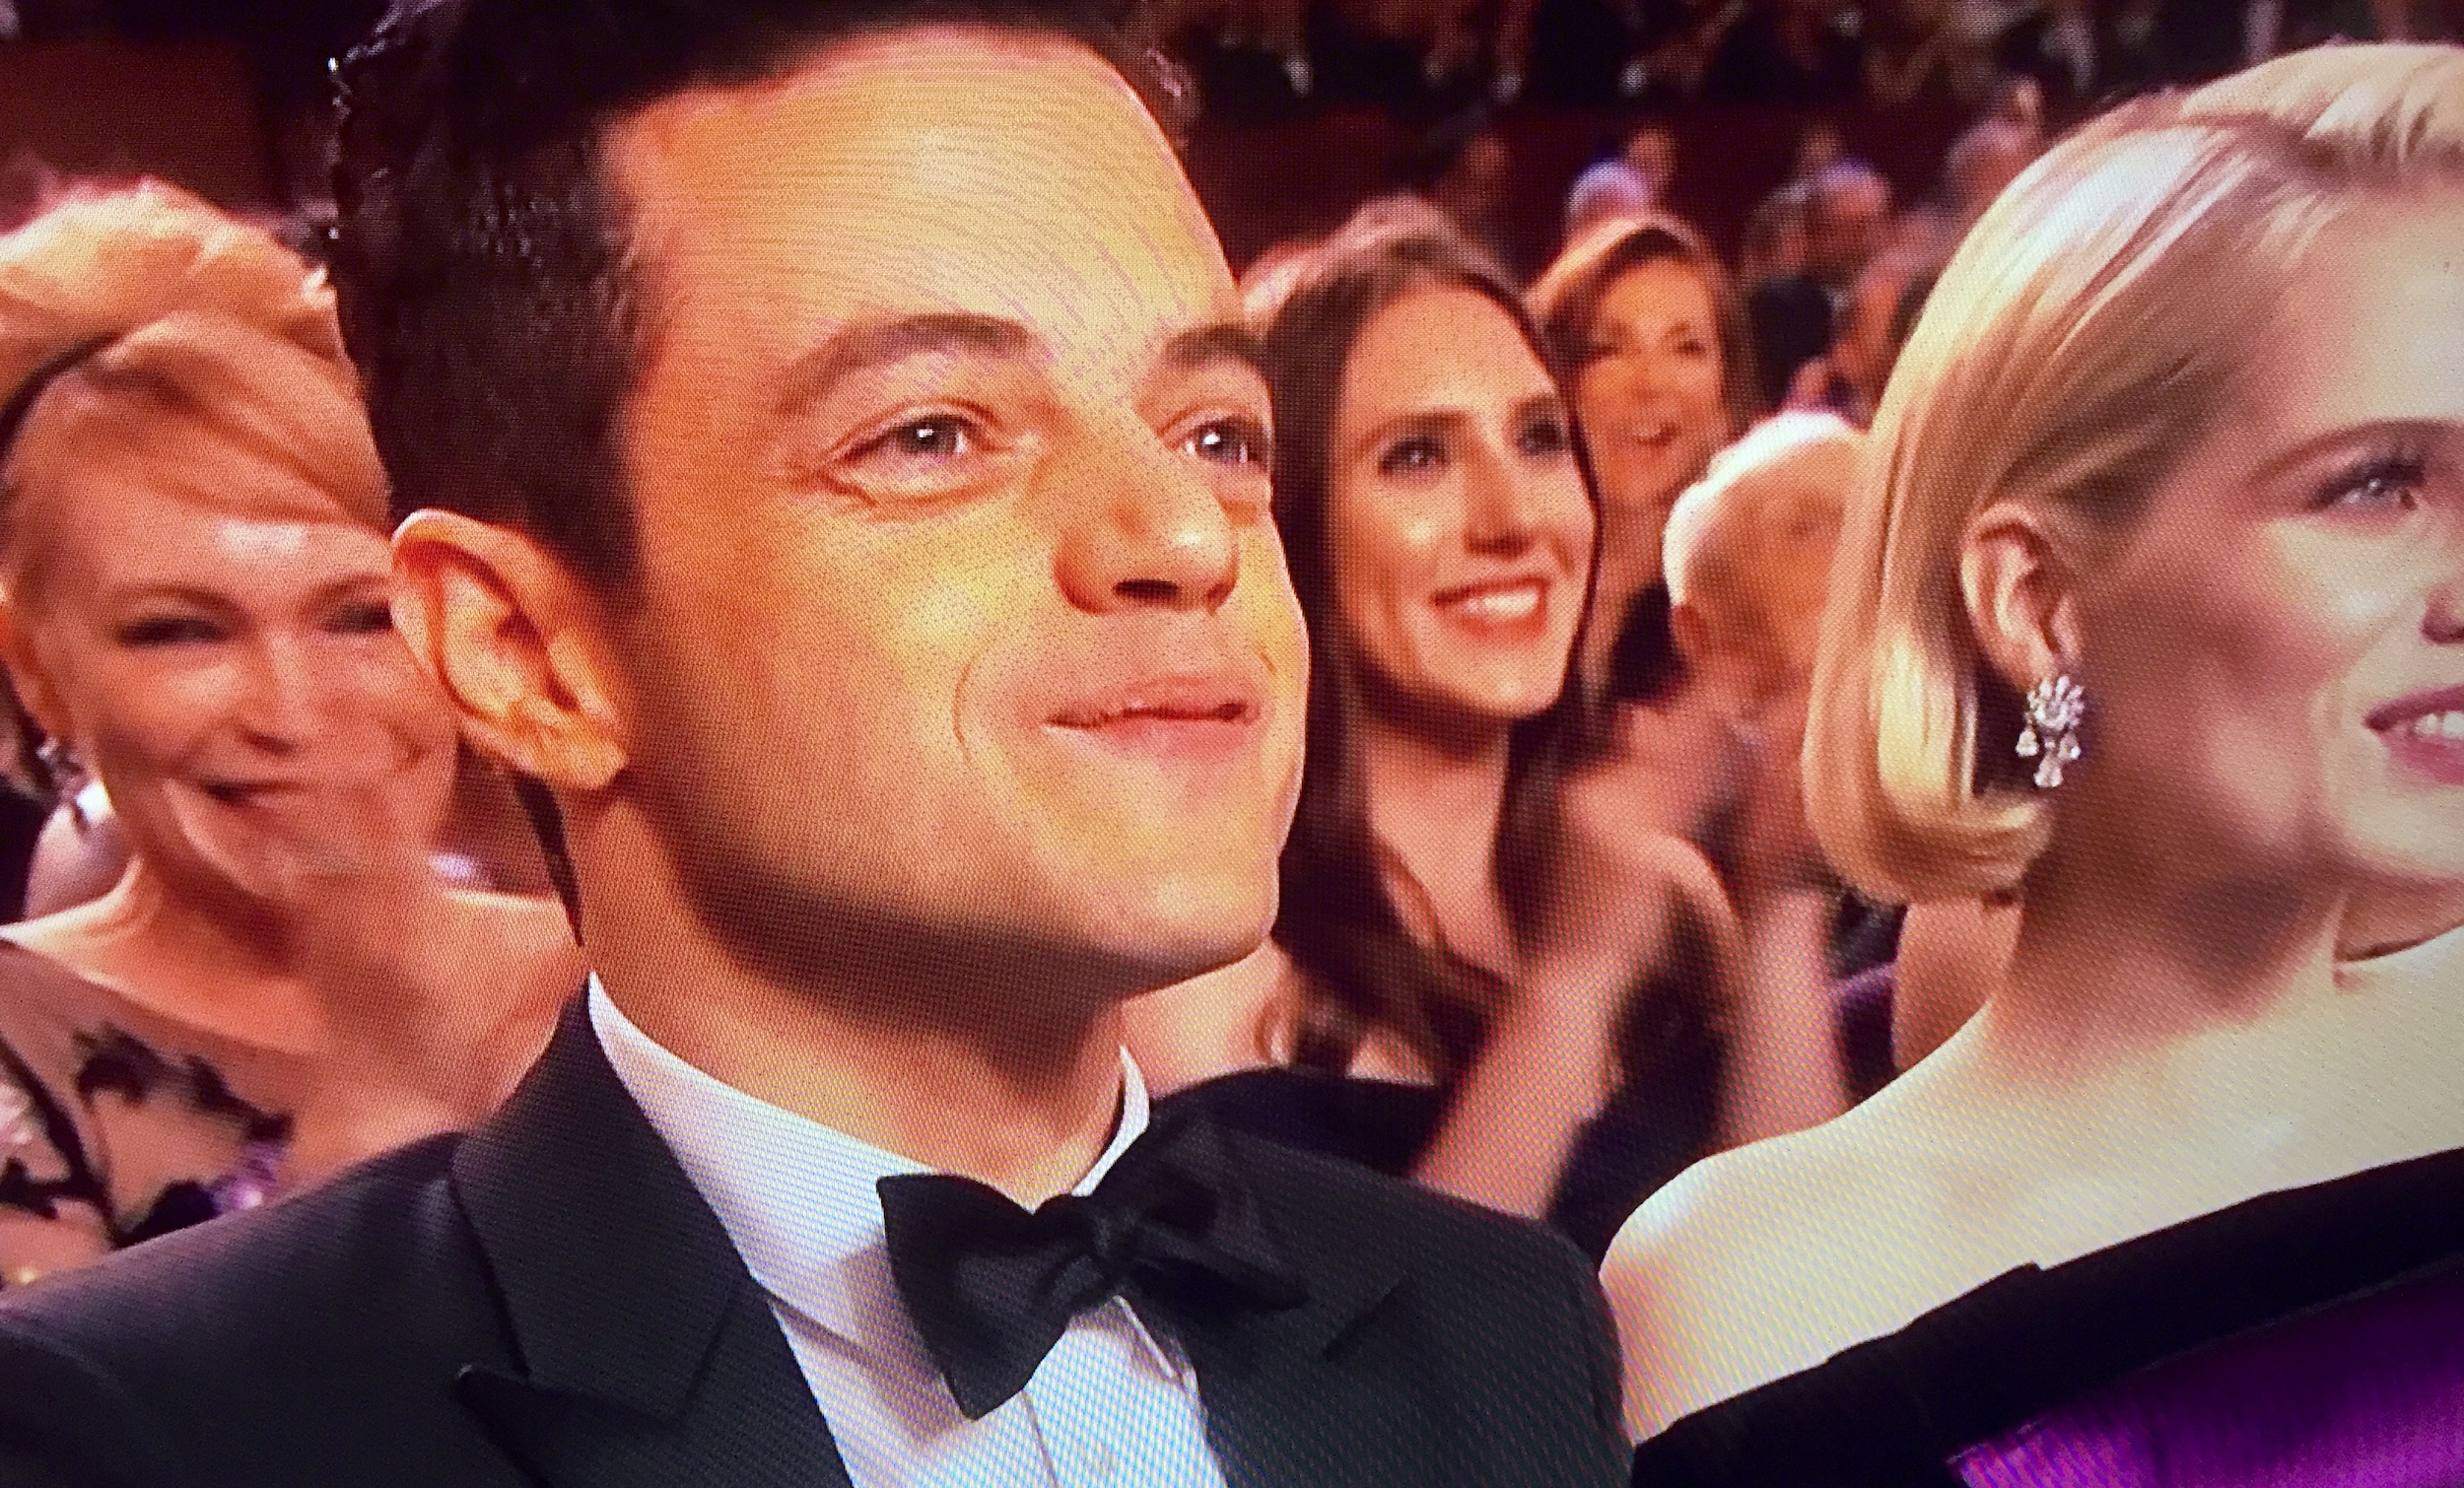 Two of Bohemian Rhapsody's stars Rami Malek and Lucy Boyton watch Queen's Oscars performance